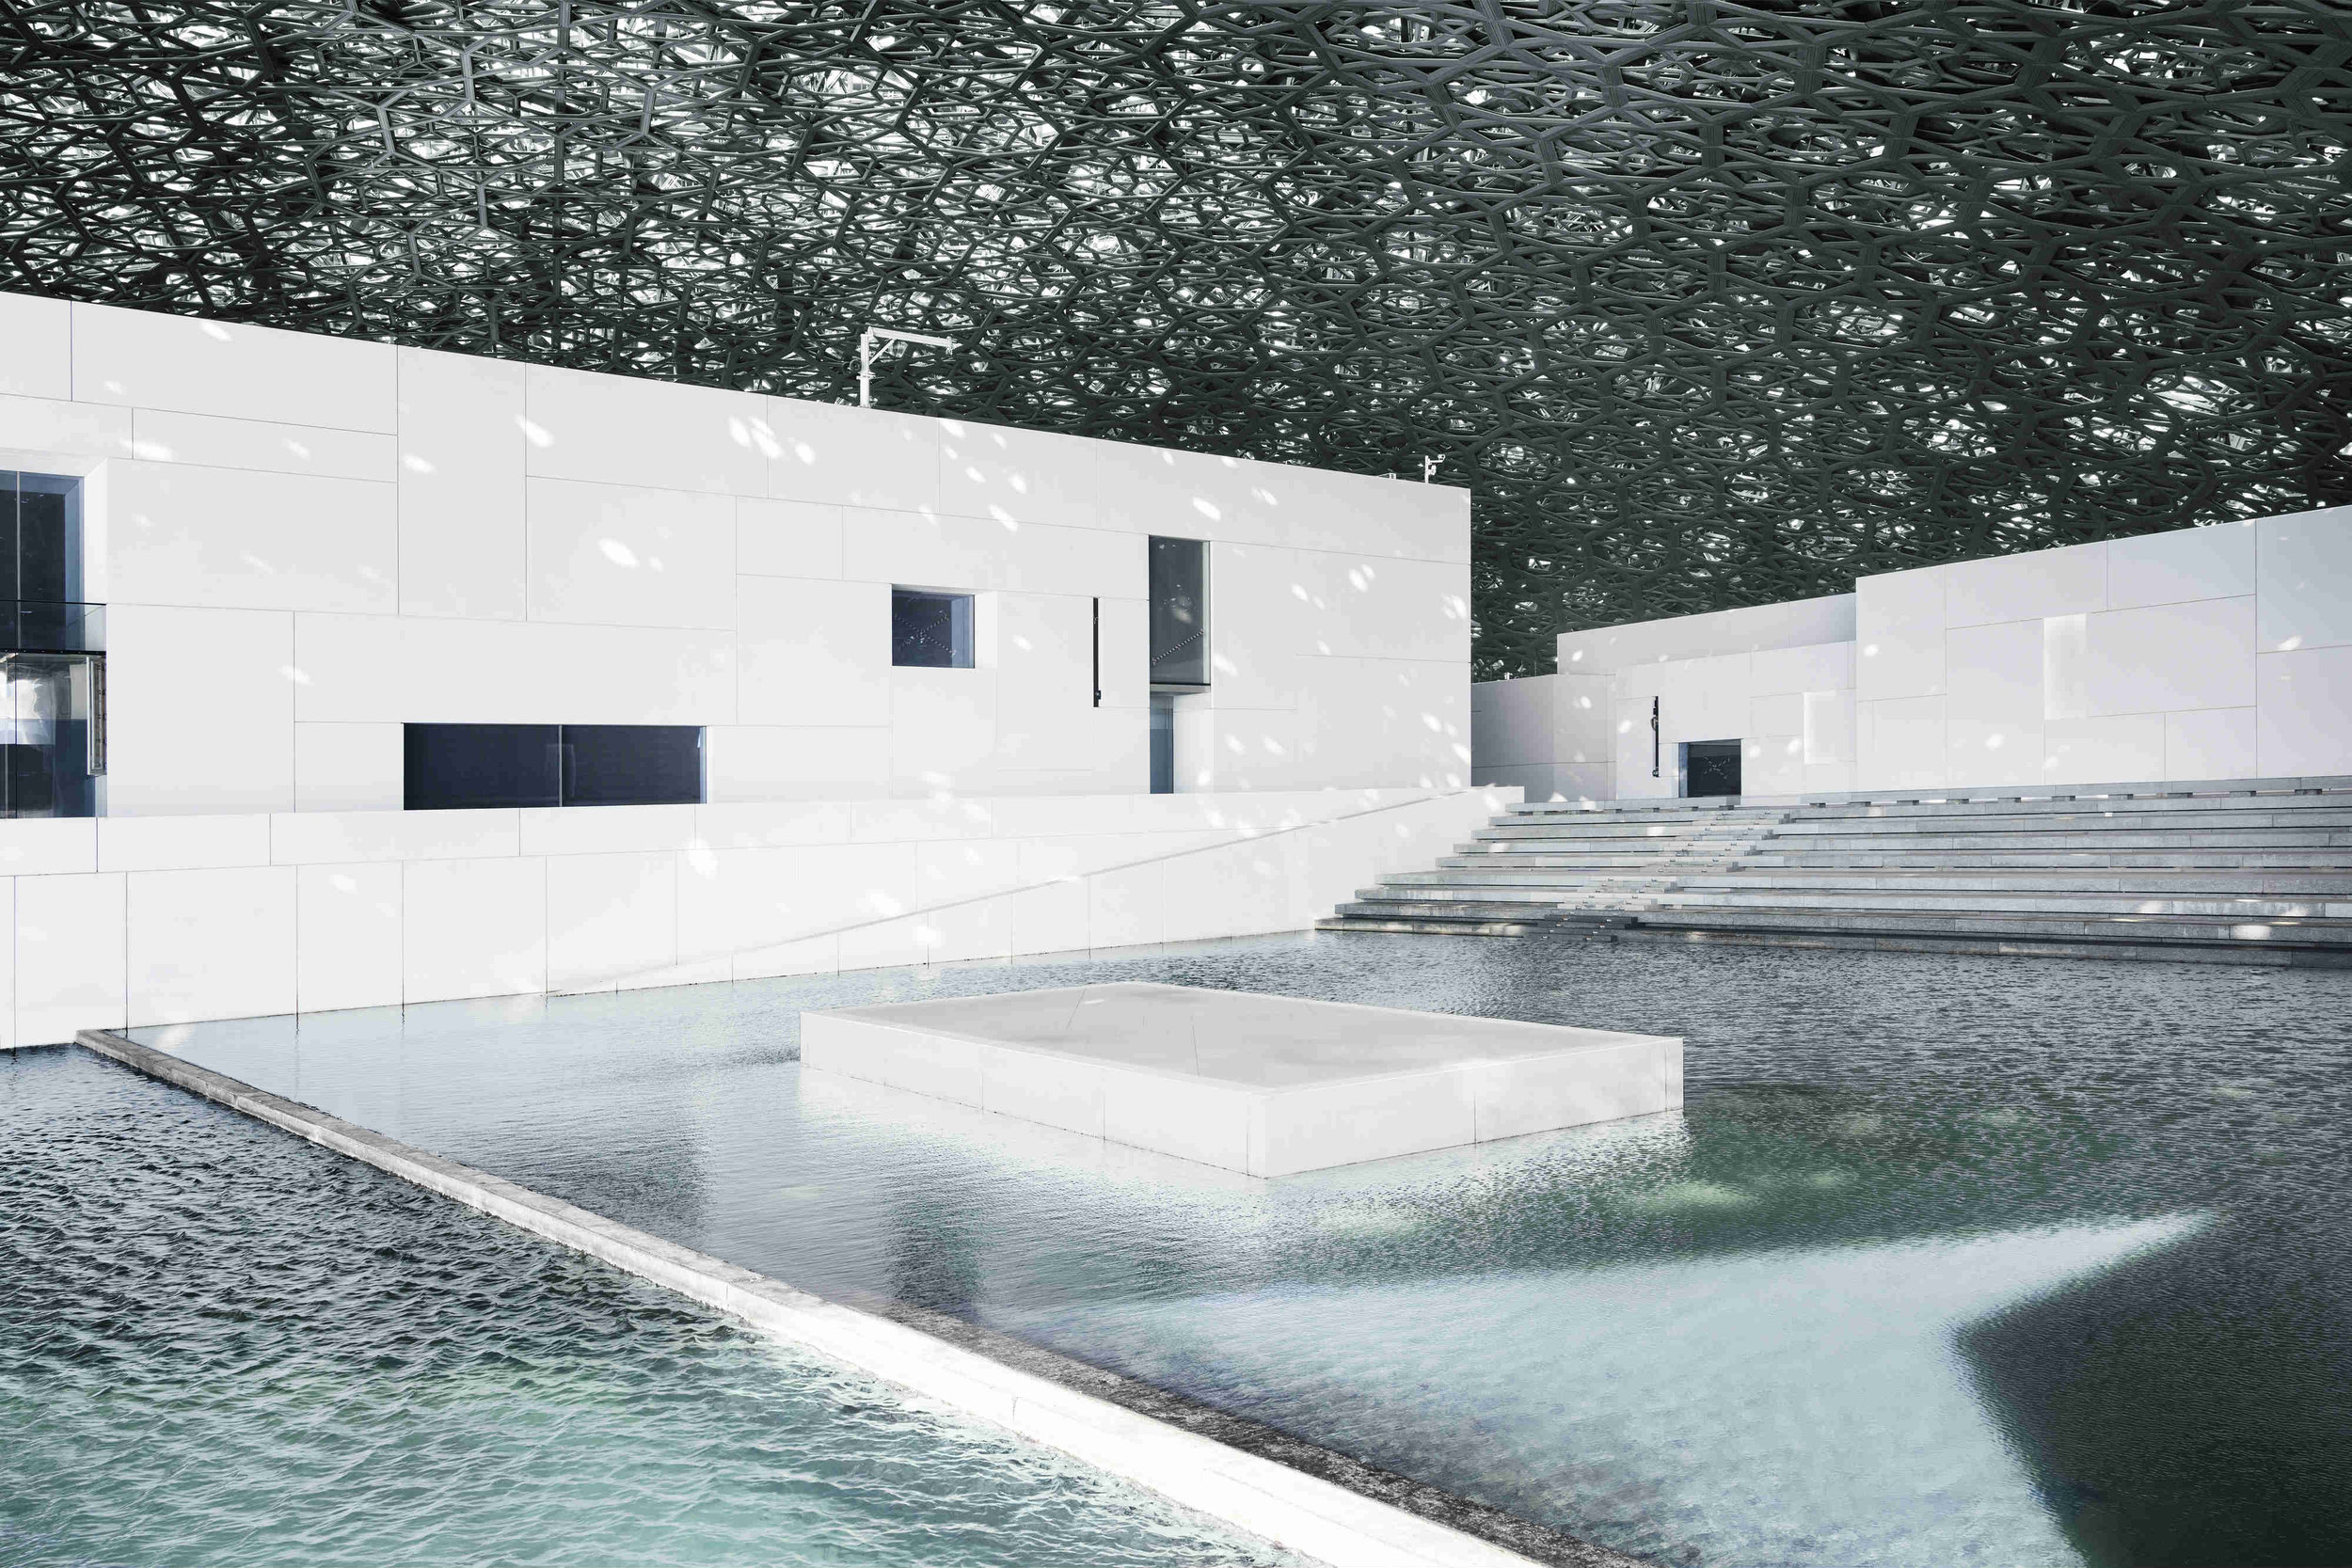 Louvre Abu Dhabi's plaza © Louvre Abu Dhabi, Photography: Mohamed Somji